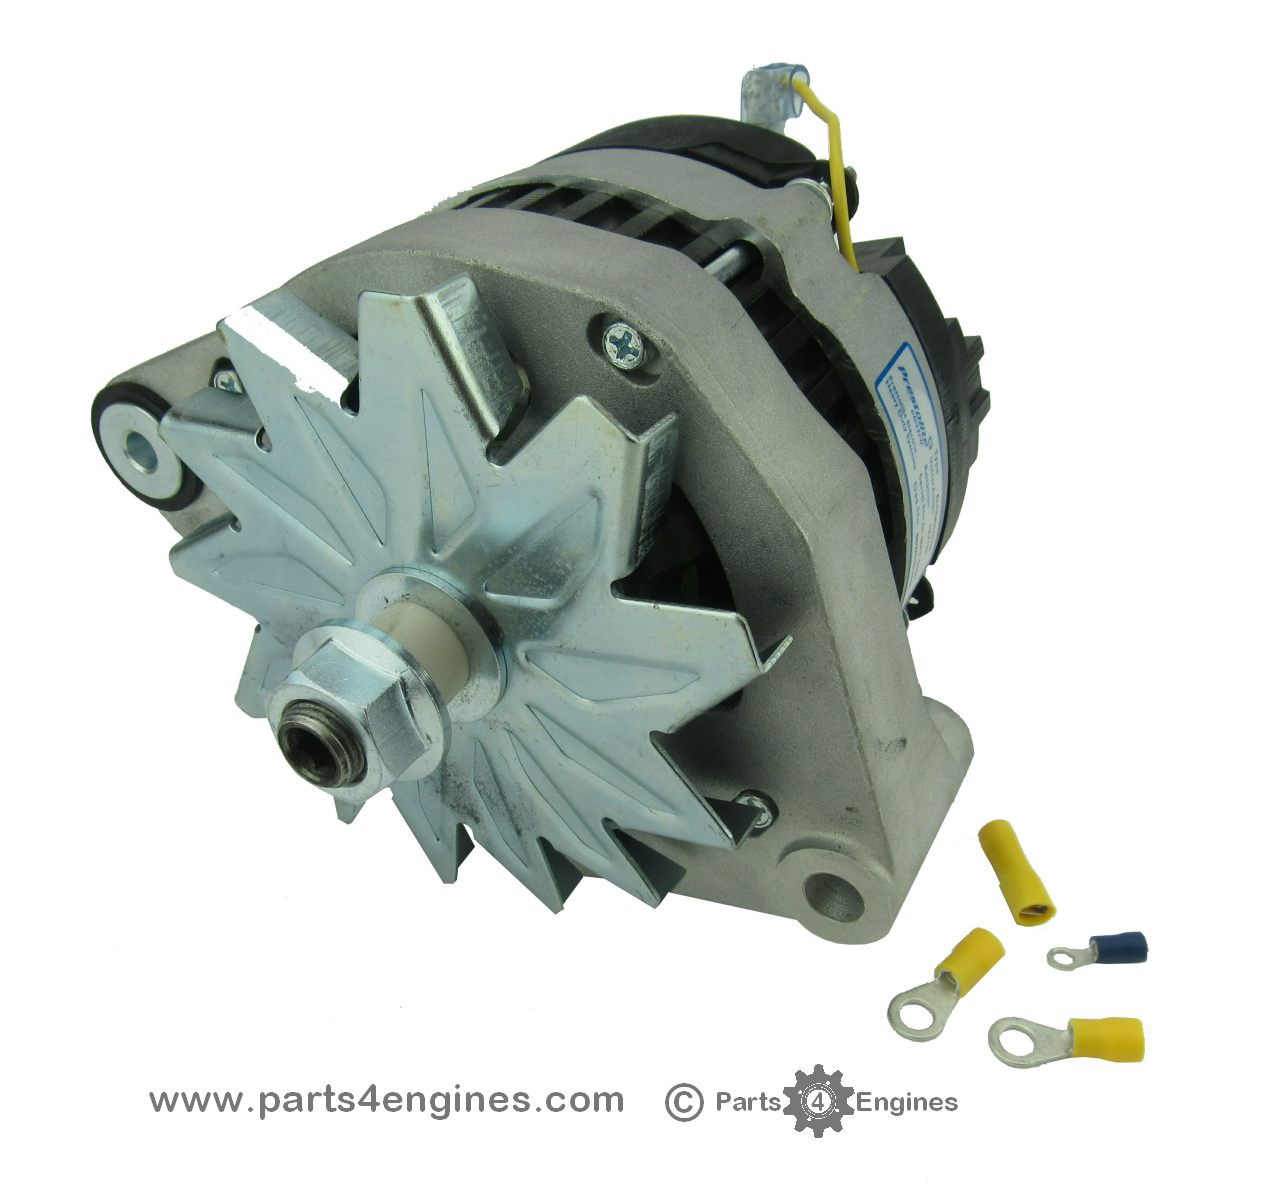 volvo penta md22 alternator from parts4engines com